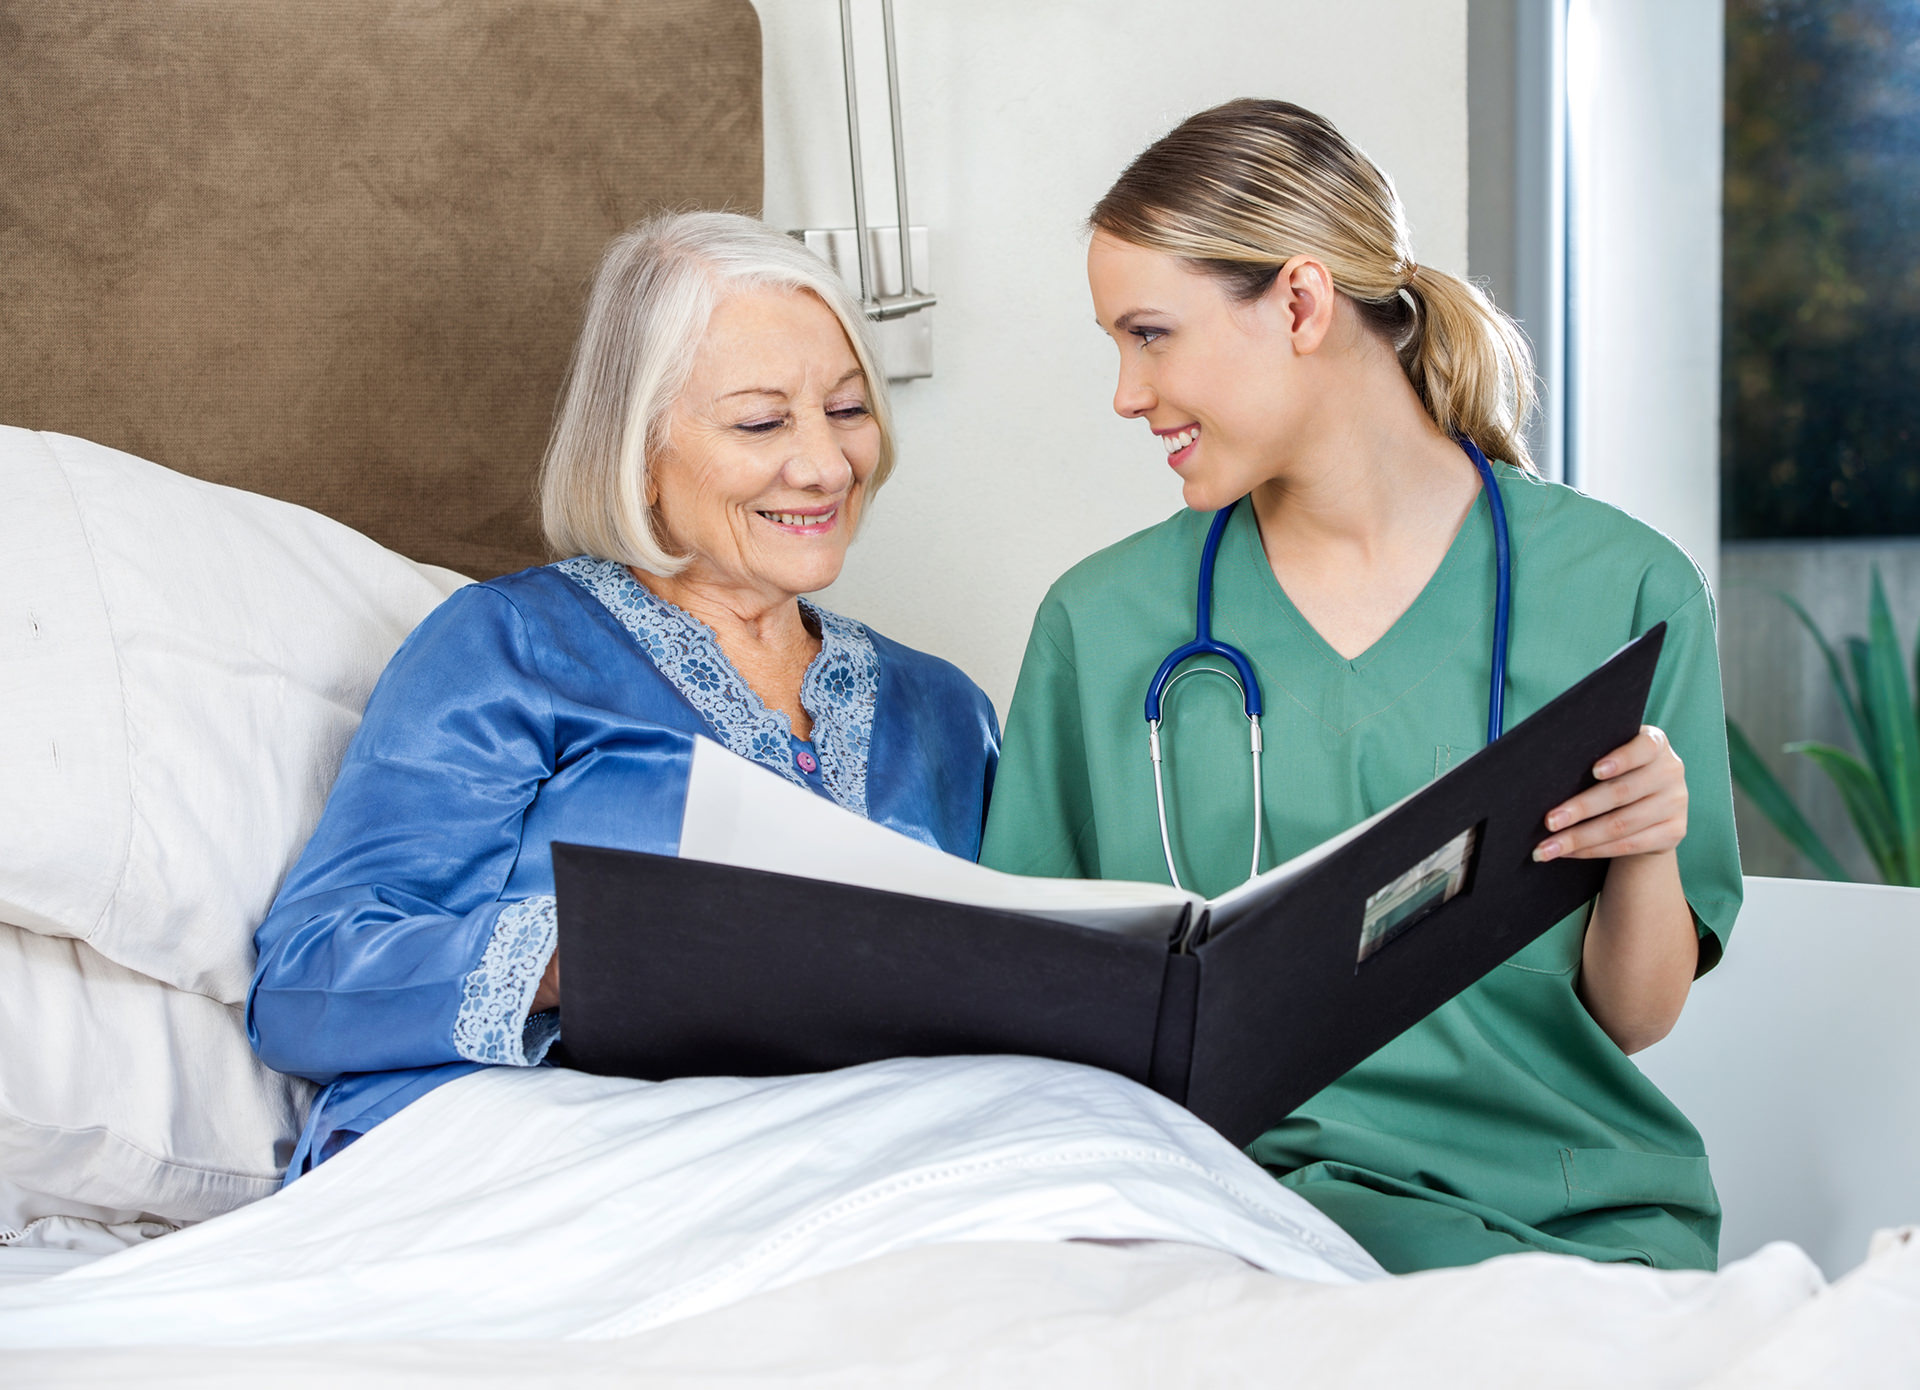 Agency_Name - Home Health Care Agency in City_Name, State_Name